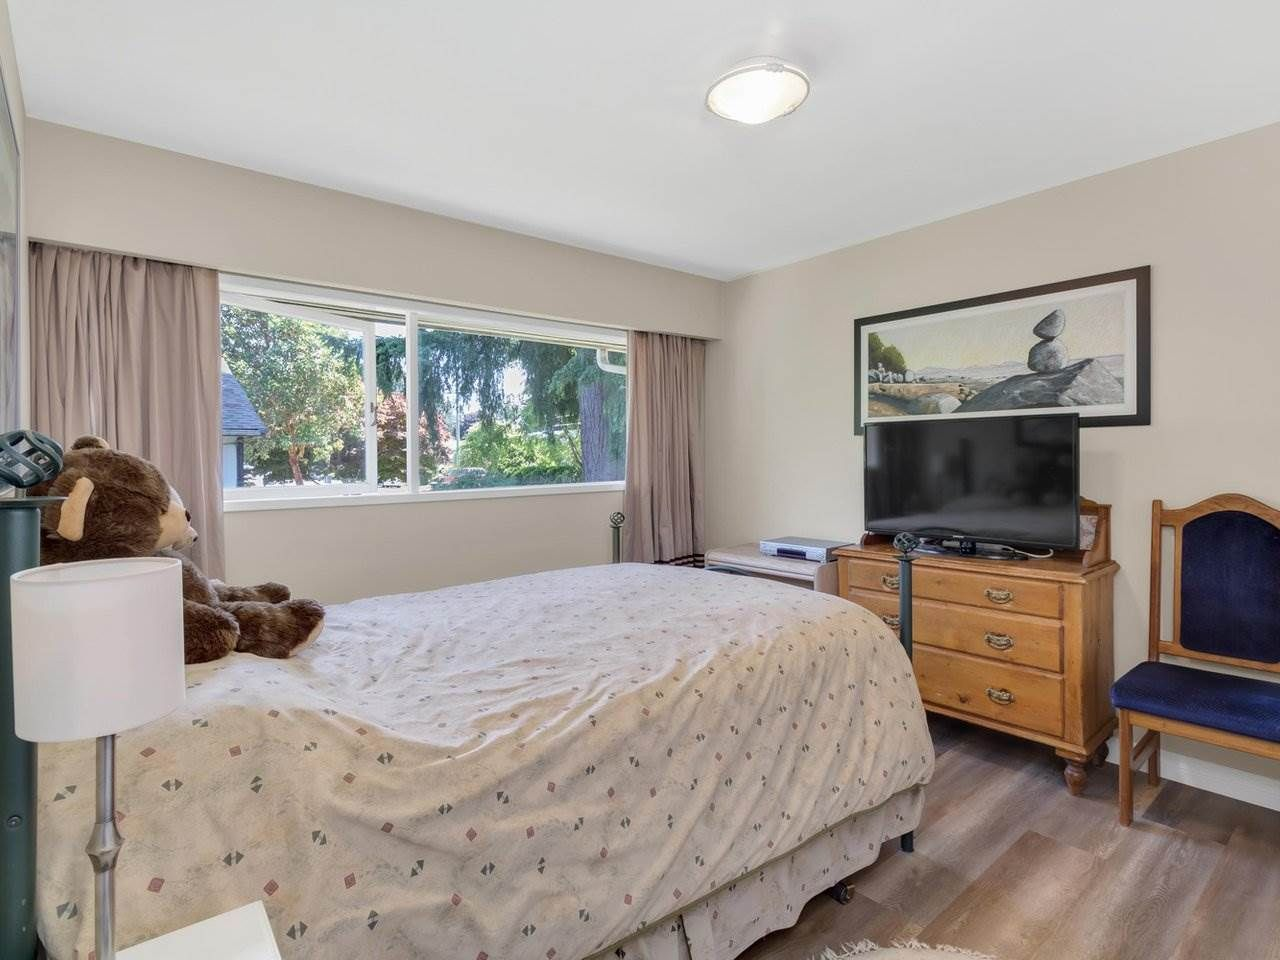 Photo 15: Photos: 943 GATENSBURY Street in Coquitlam: Harbour Chines House for sale : MLS®# R2499202